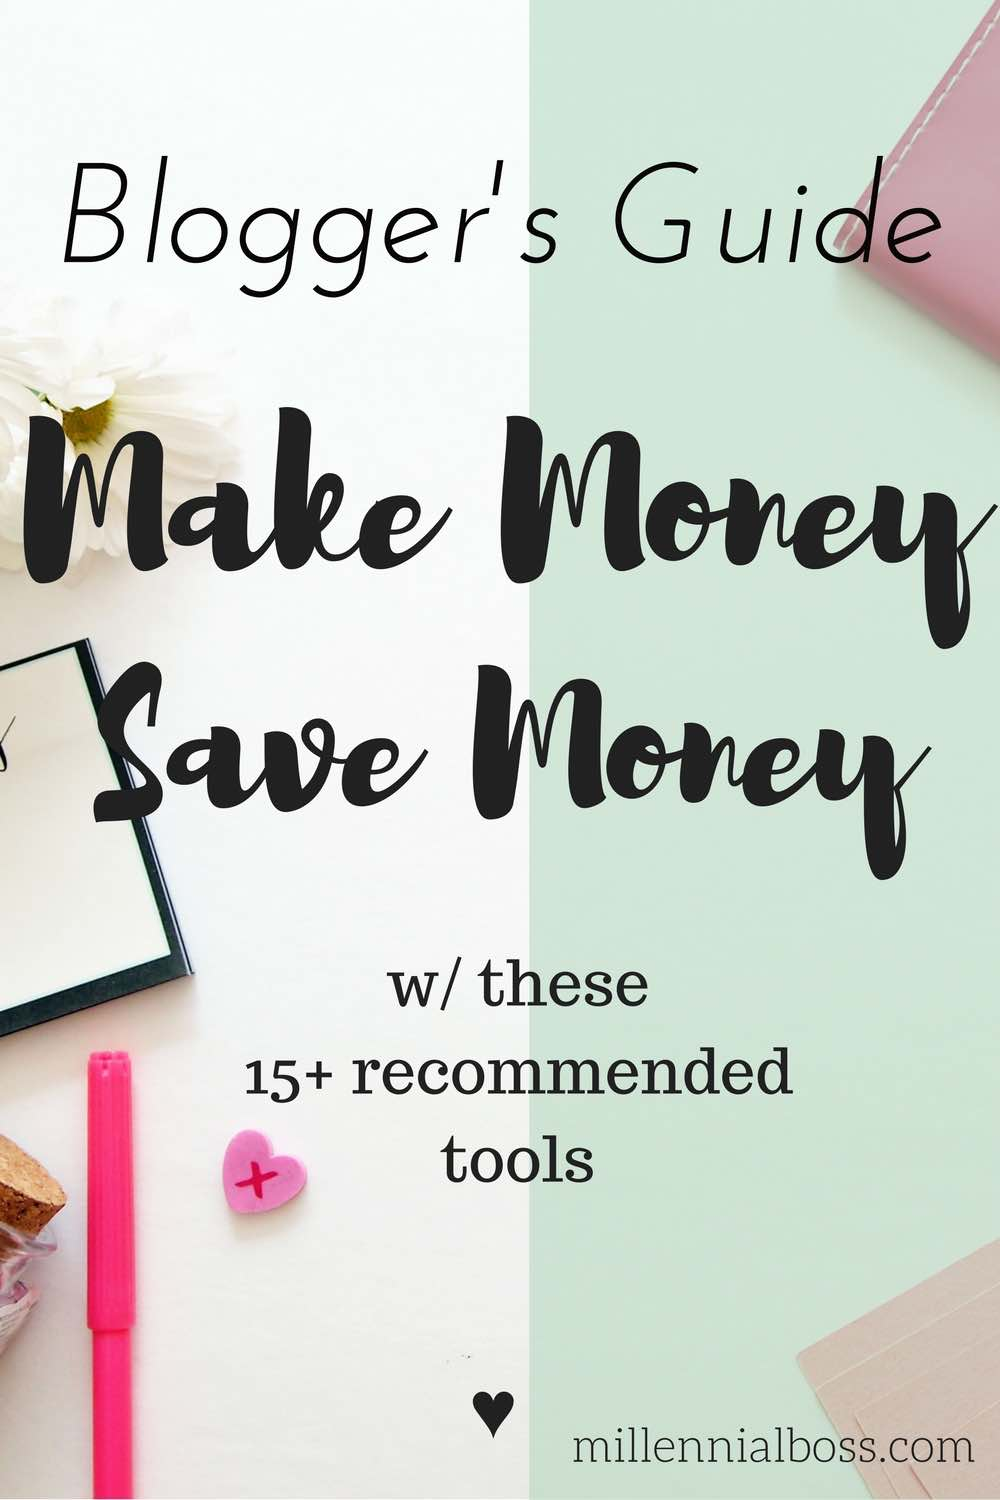 Bookmarking this ASAP! So glad I found this list of tools in one place!